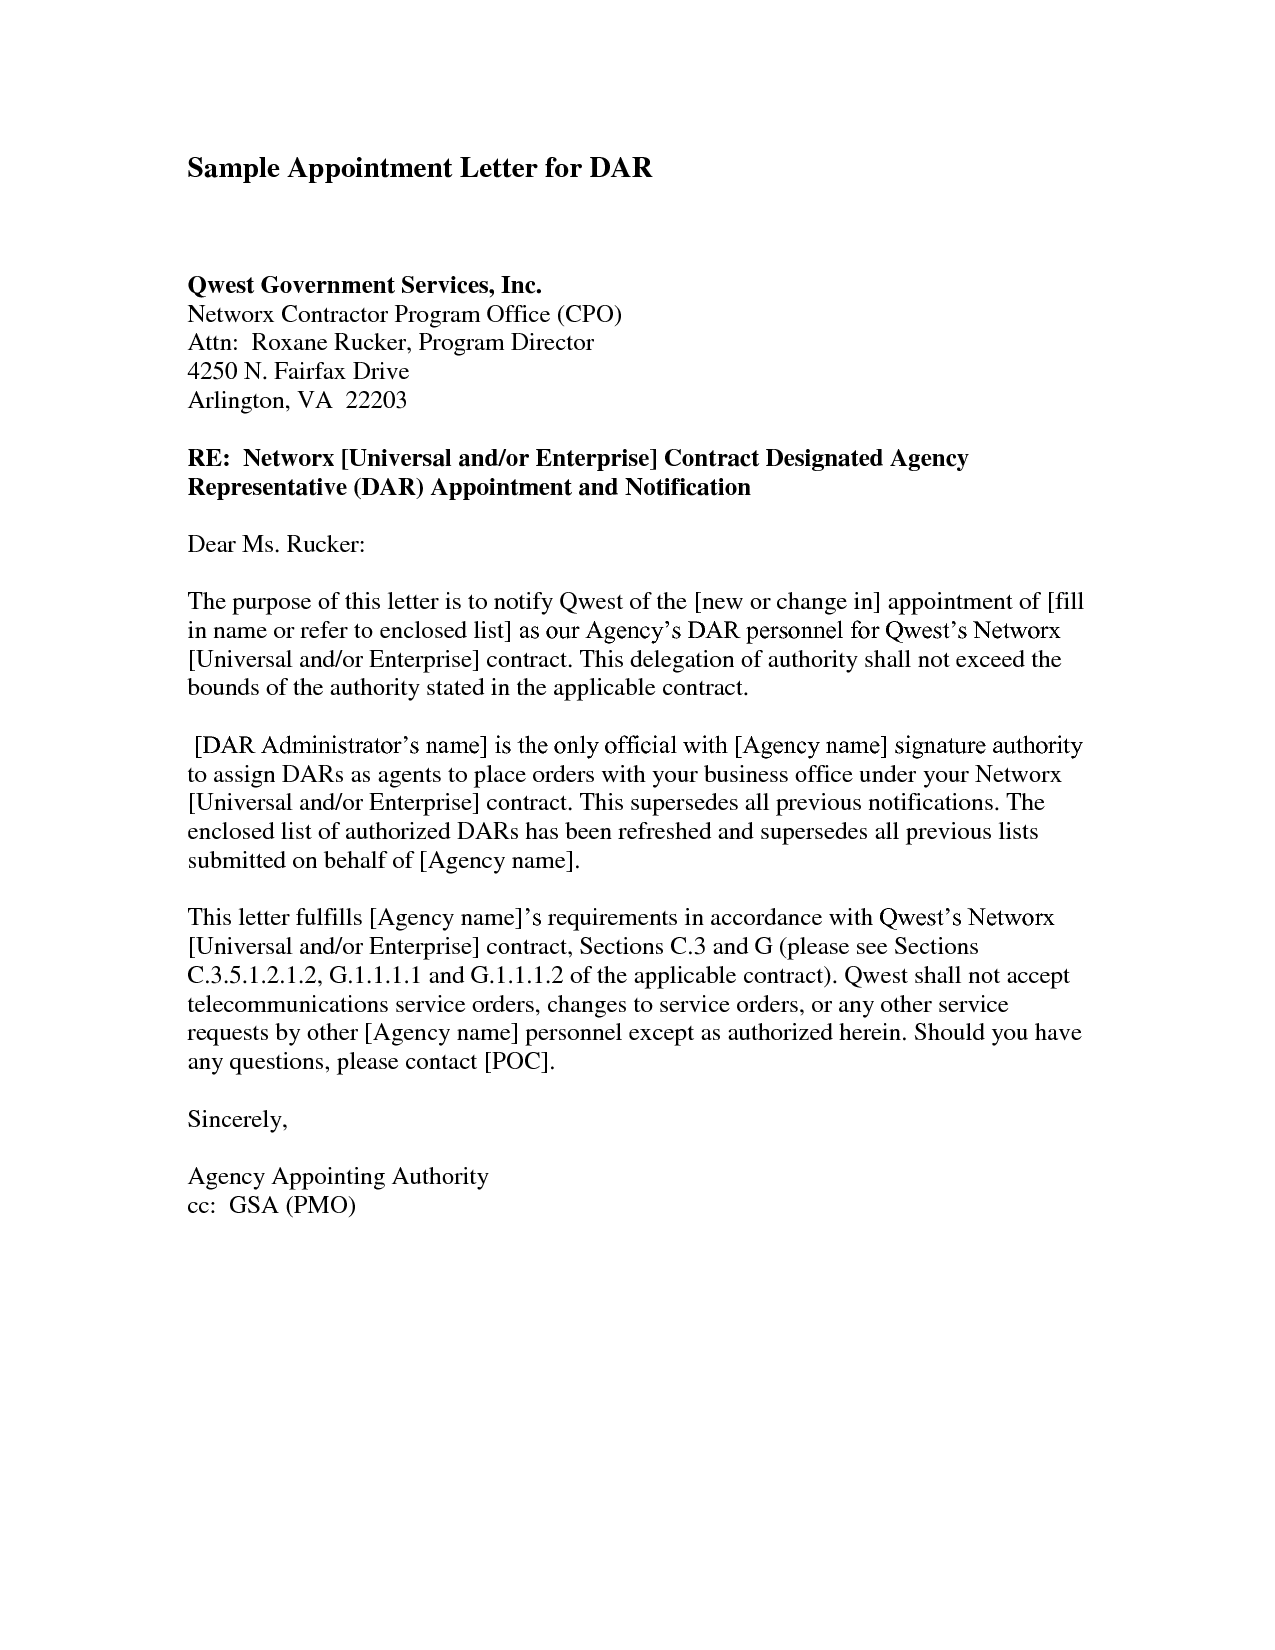 Trustee Appointment Letter Director Trustee Is Appointed